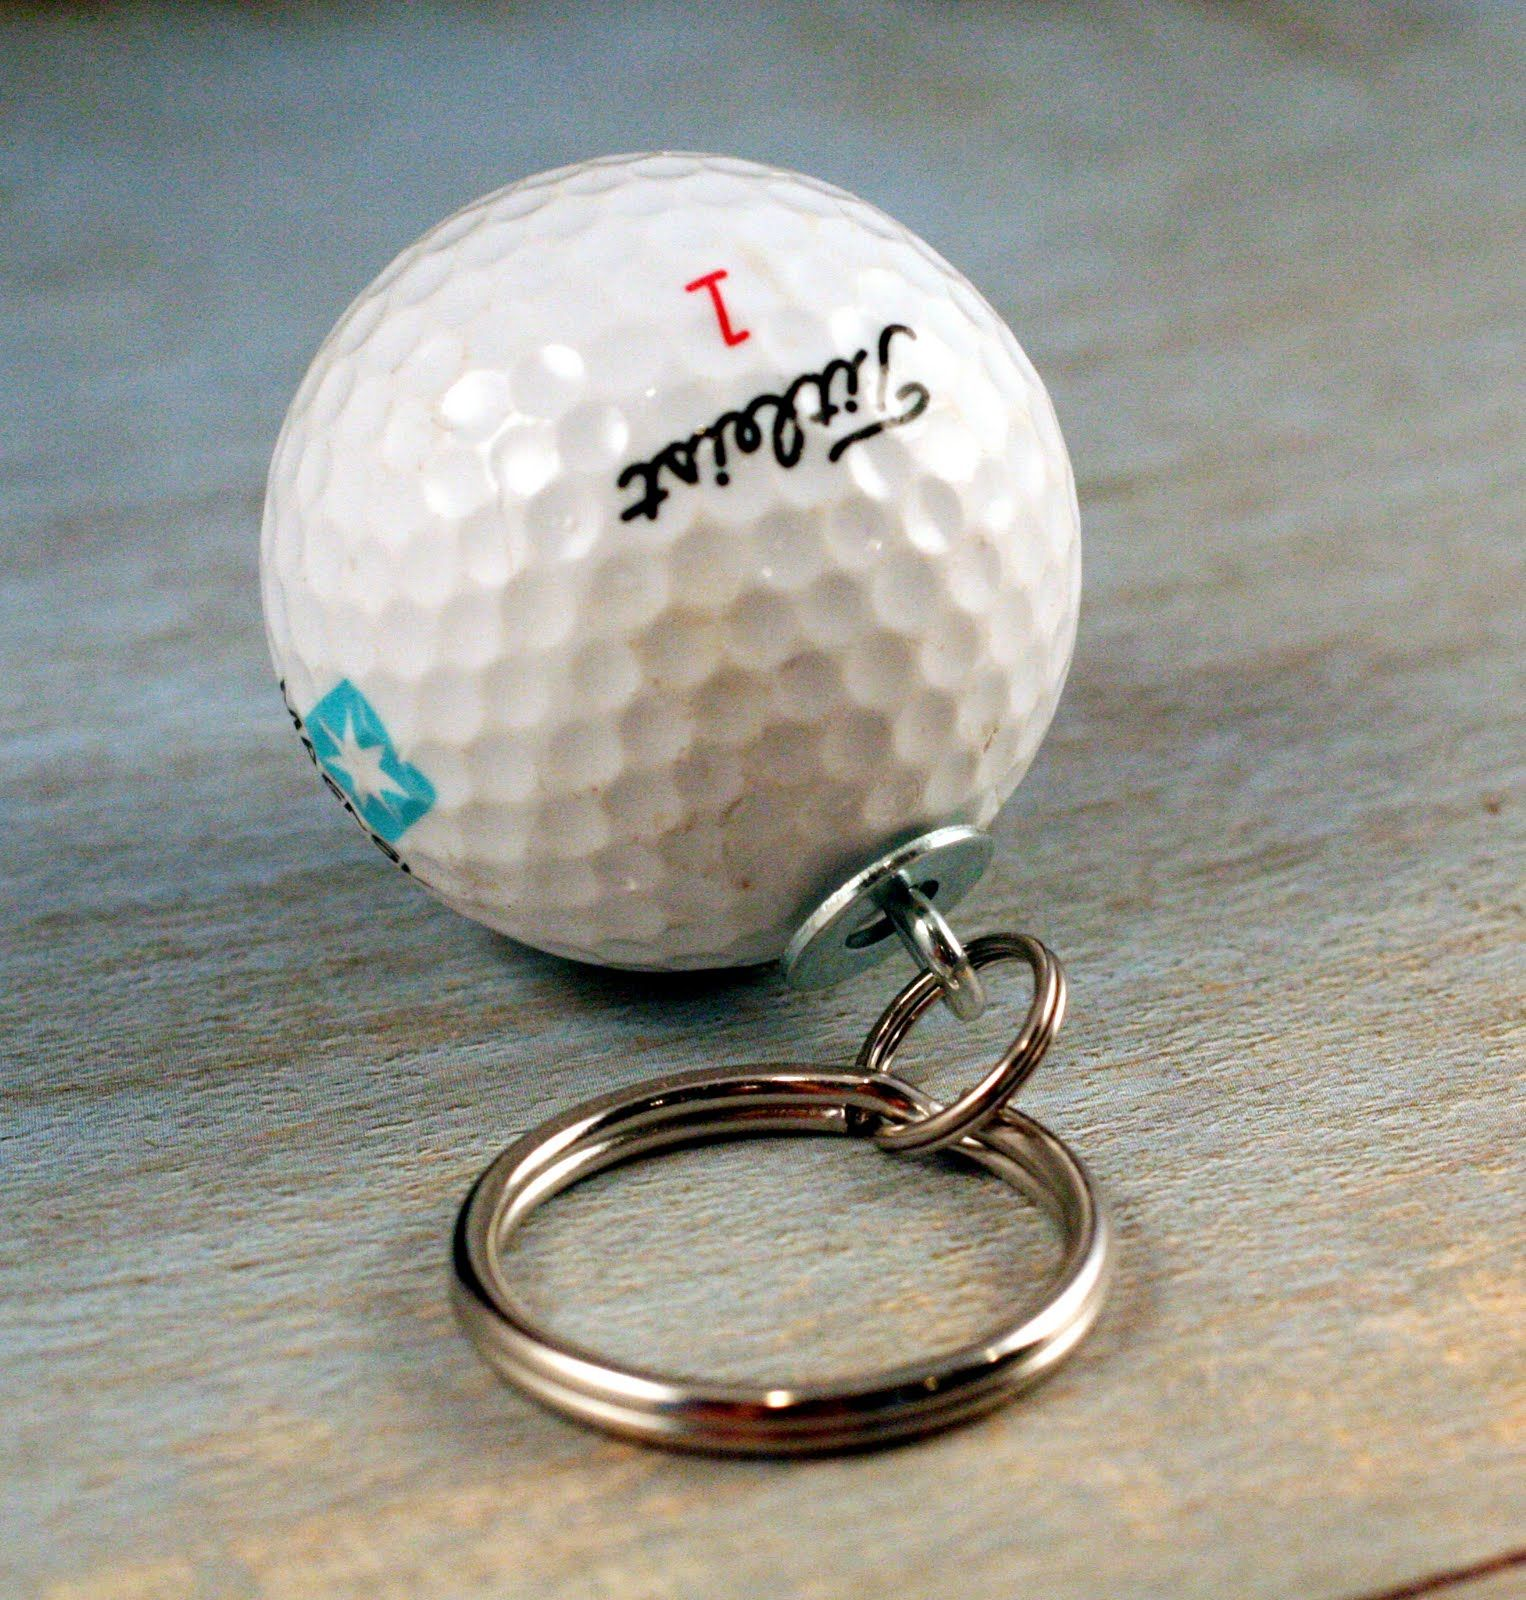 olive bites home of uncorked + polarity: Upcycled DIY Tutorial Golf Ball Keychain. I knew someone would have done this already and provided instructions:)